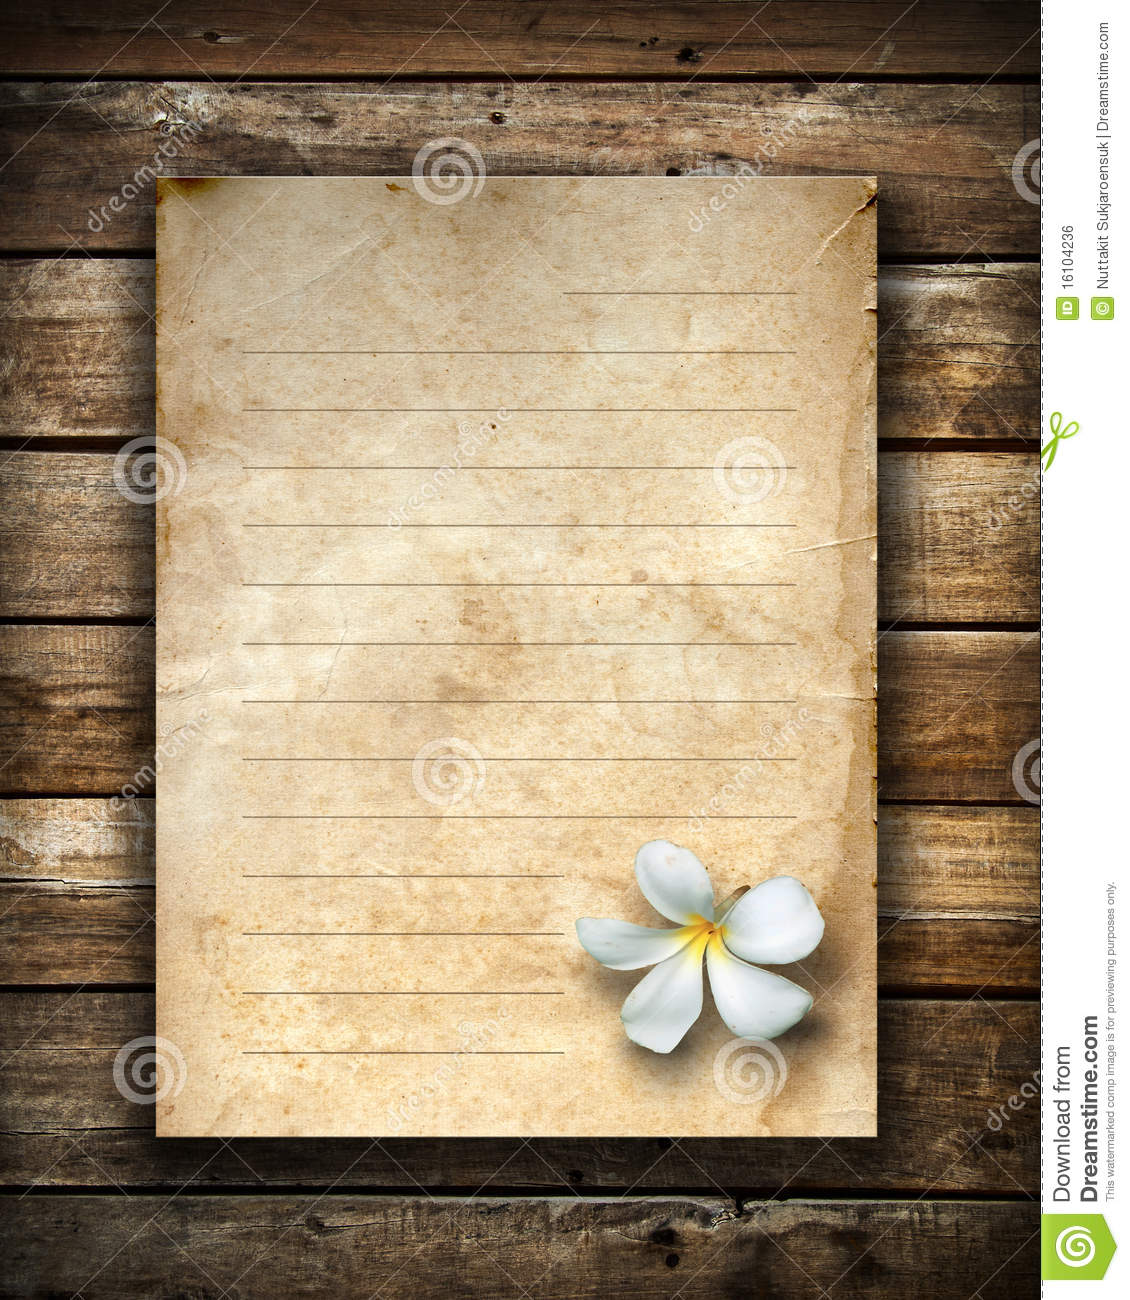 White Flower And Old Grunge Letter Paper Royalty Free